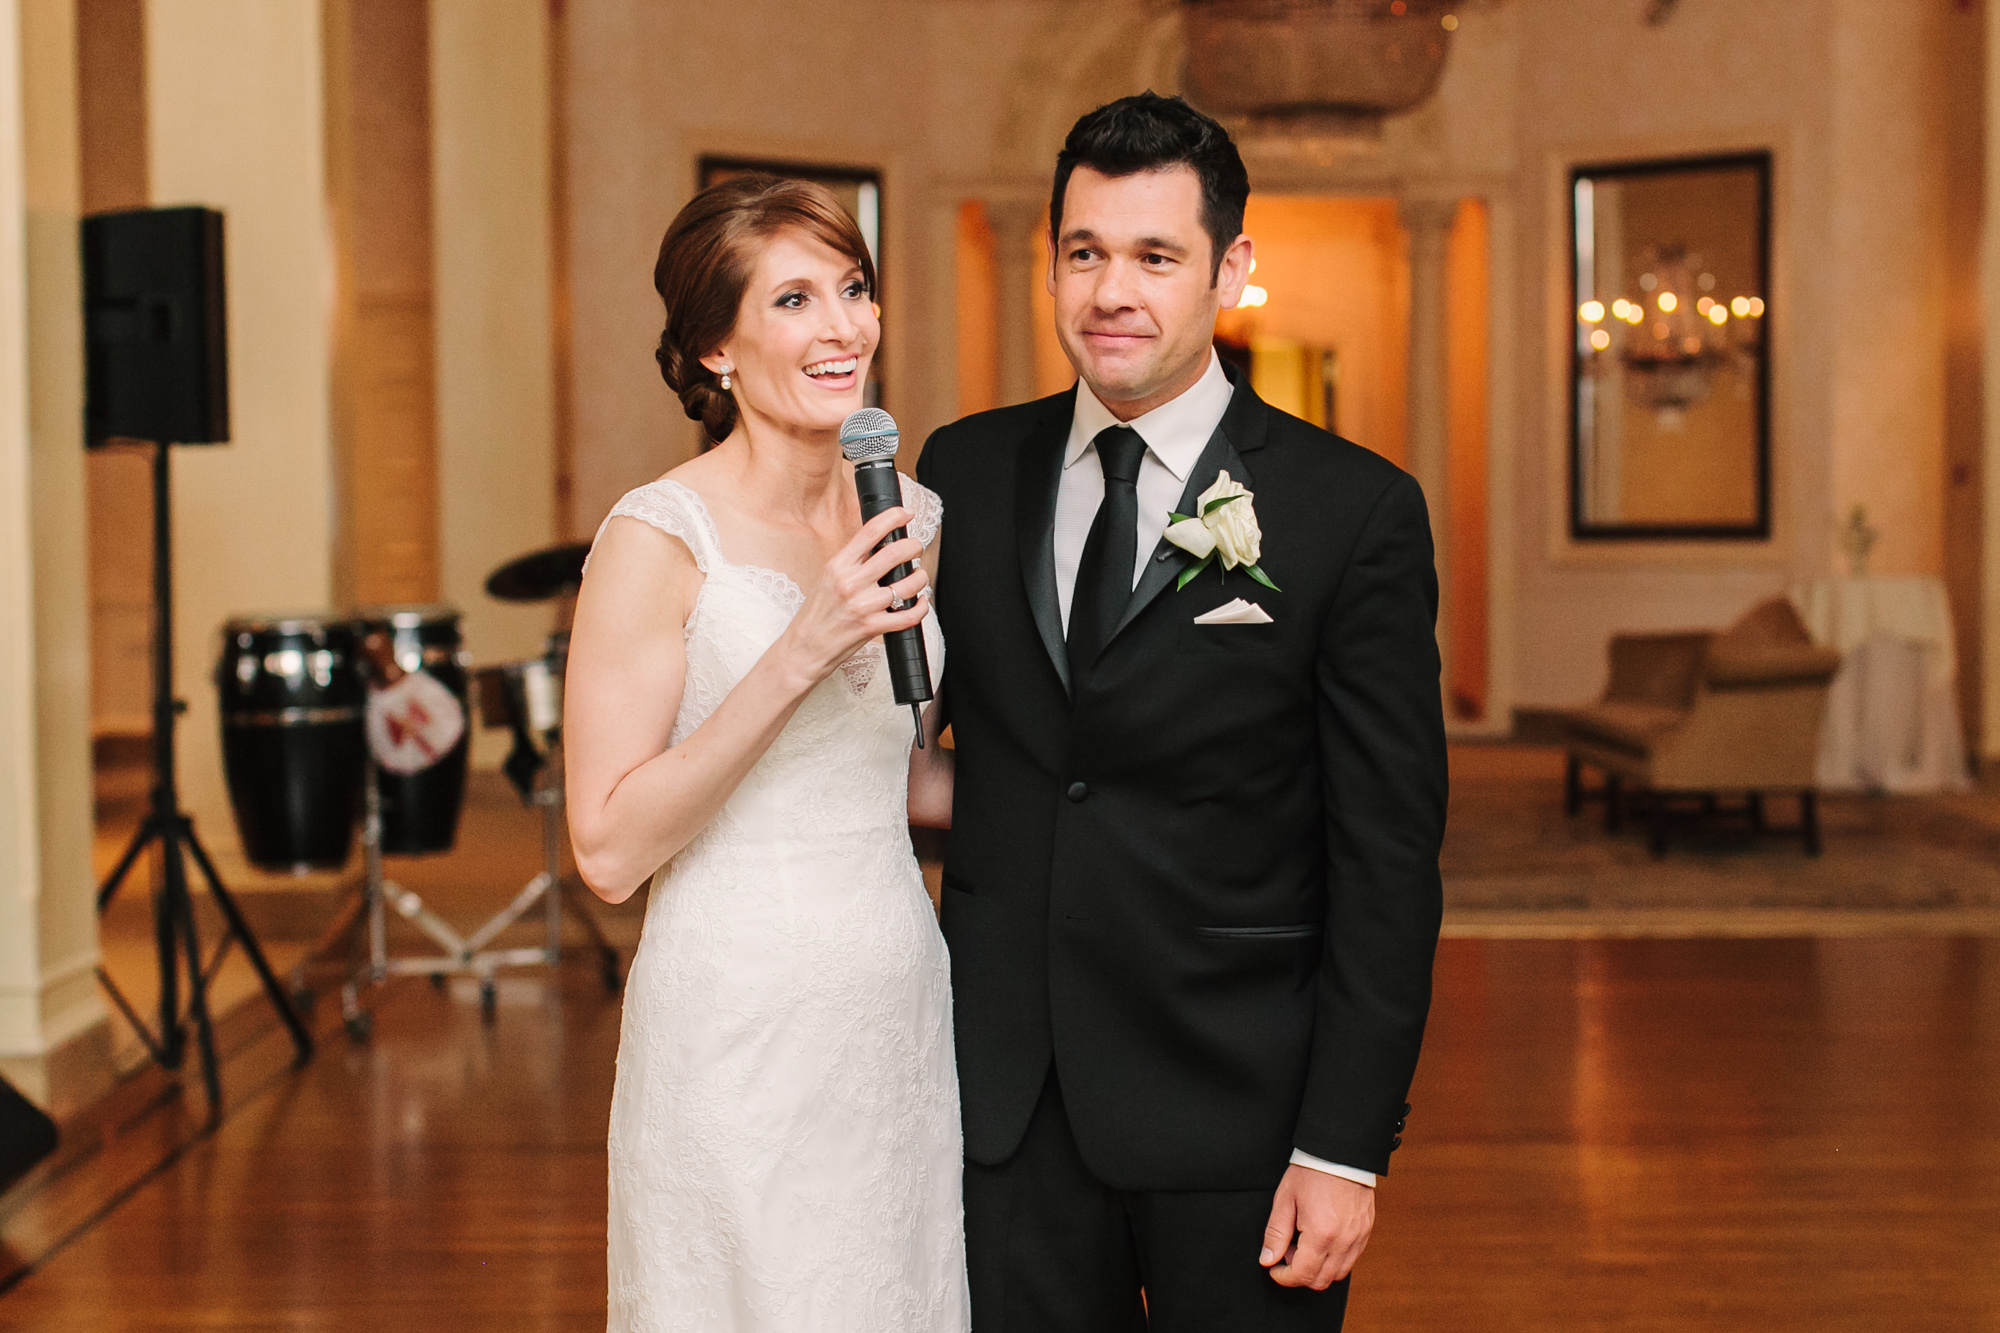 52_Claudine_Dio_Westchester_Country_Club_Wedding_Rye_NY_Tanya_Salazar_Photography_614.jpg